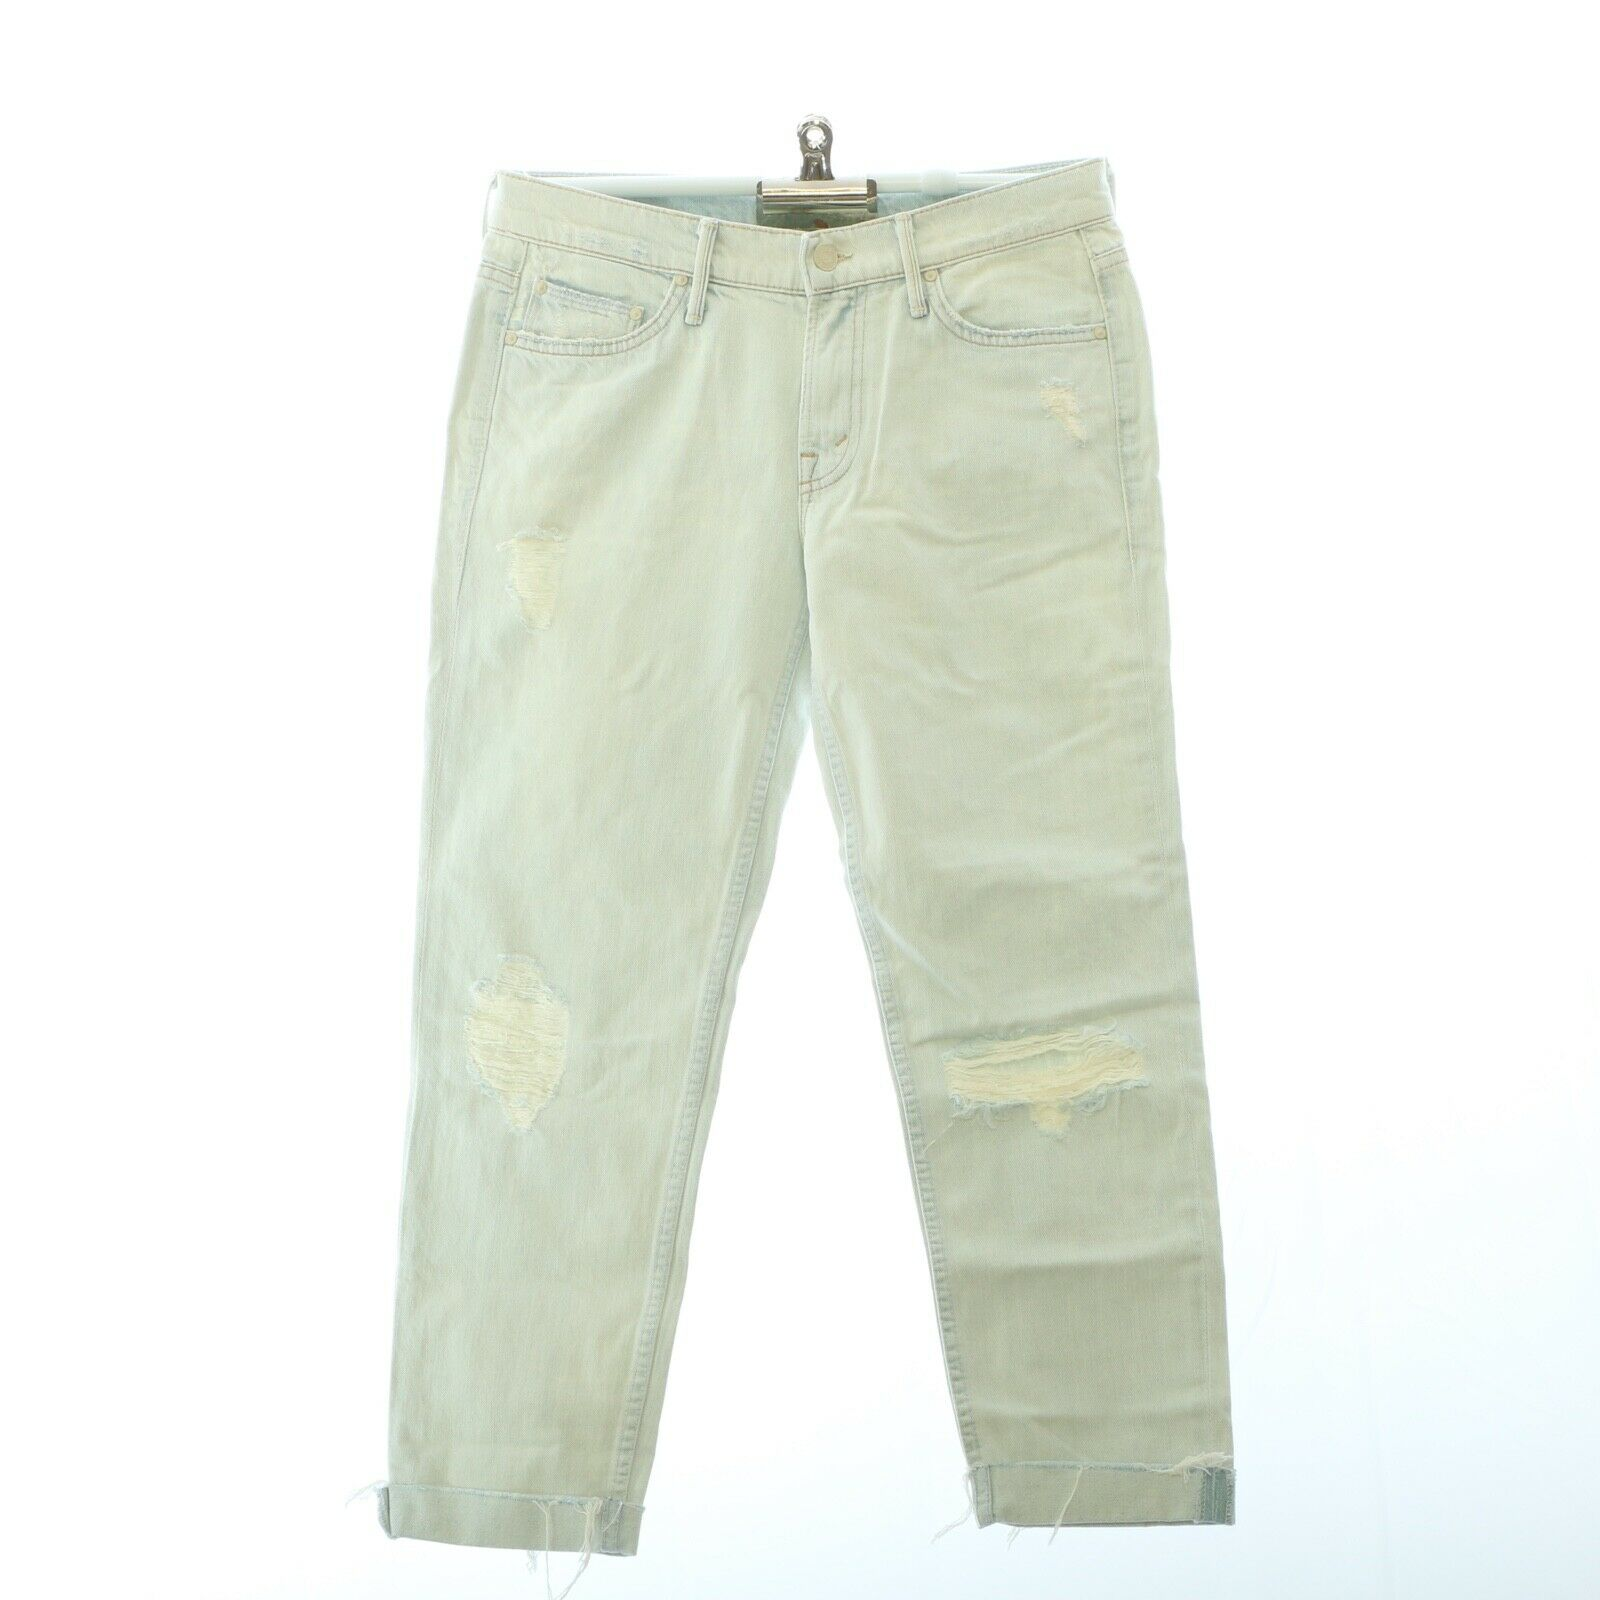 Mother Womens Jeans 25 Faded Distressed